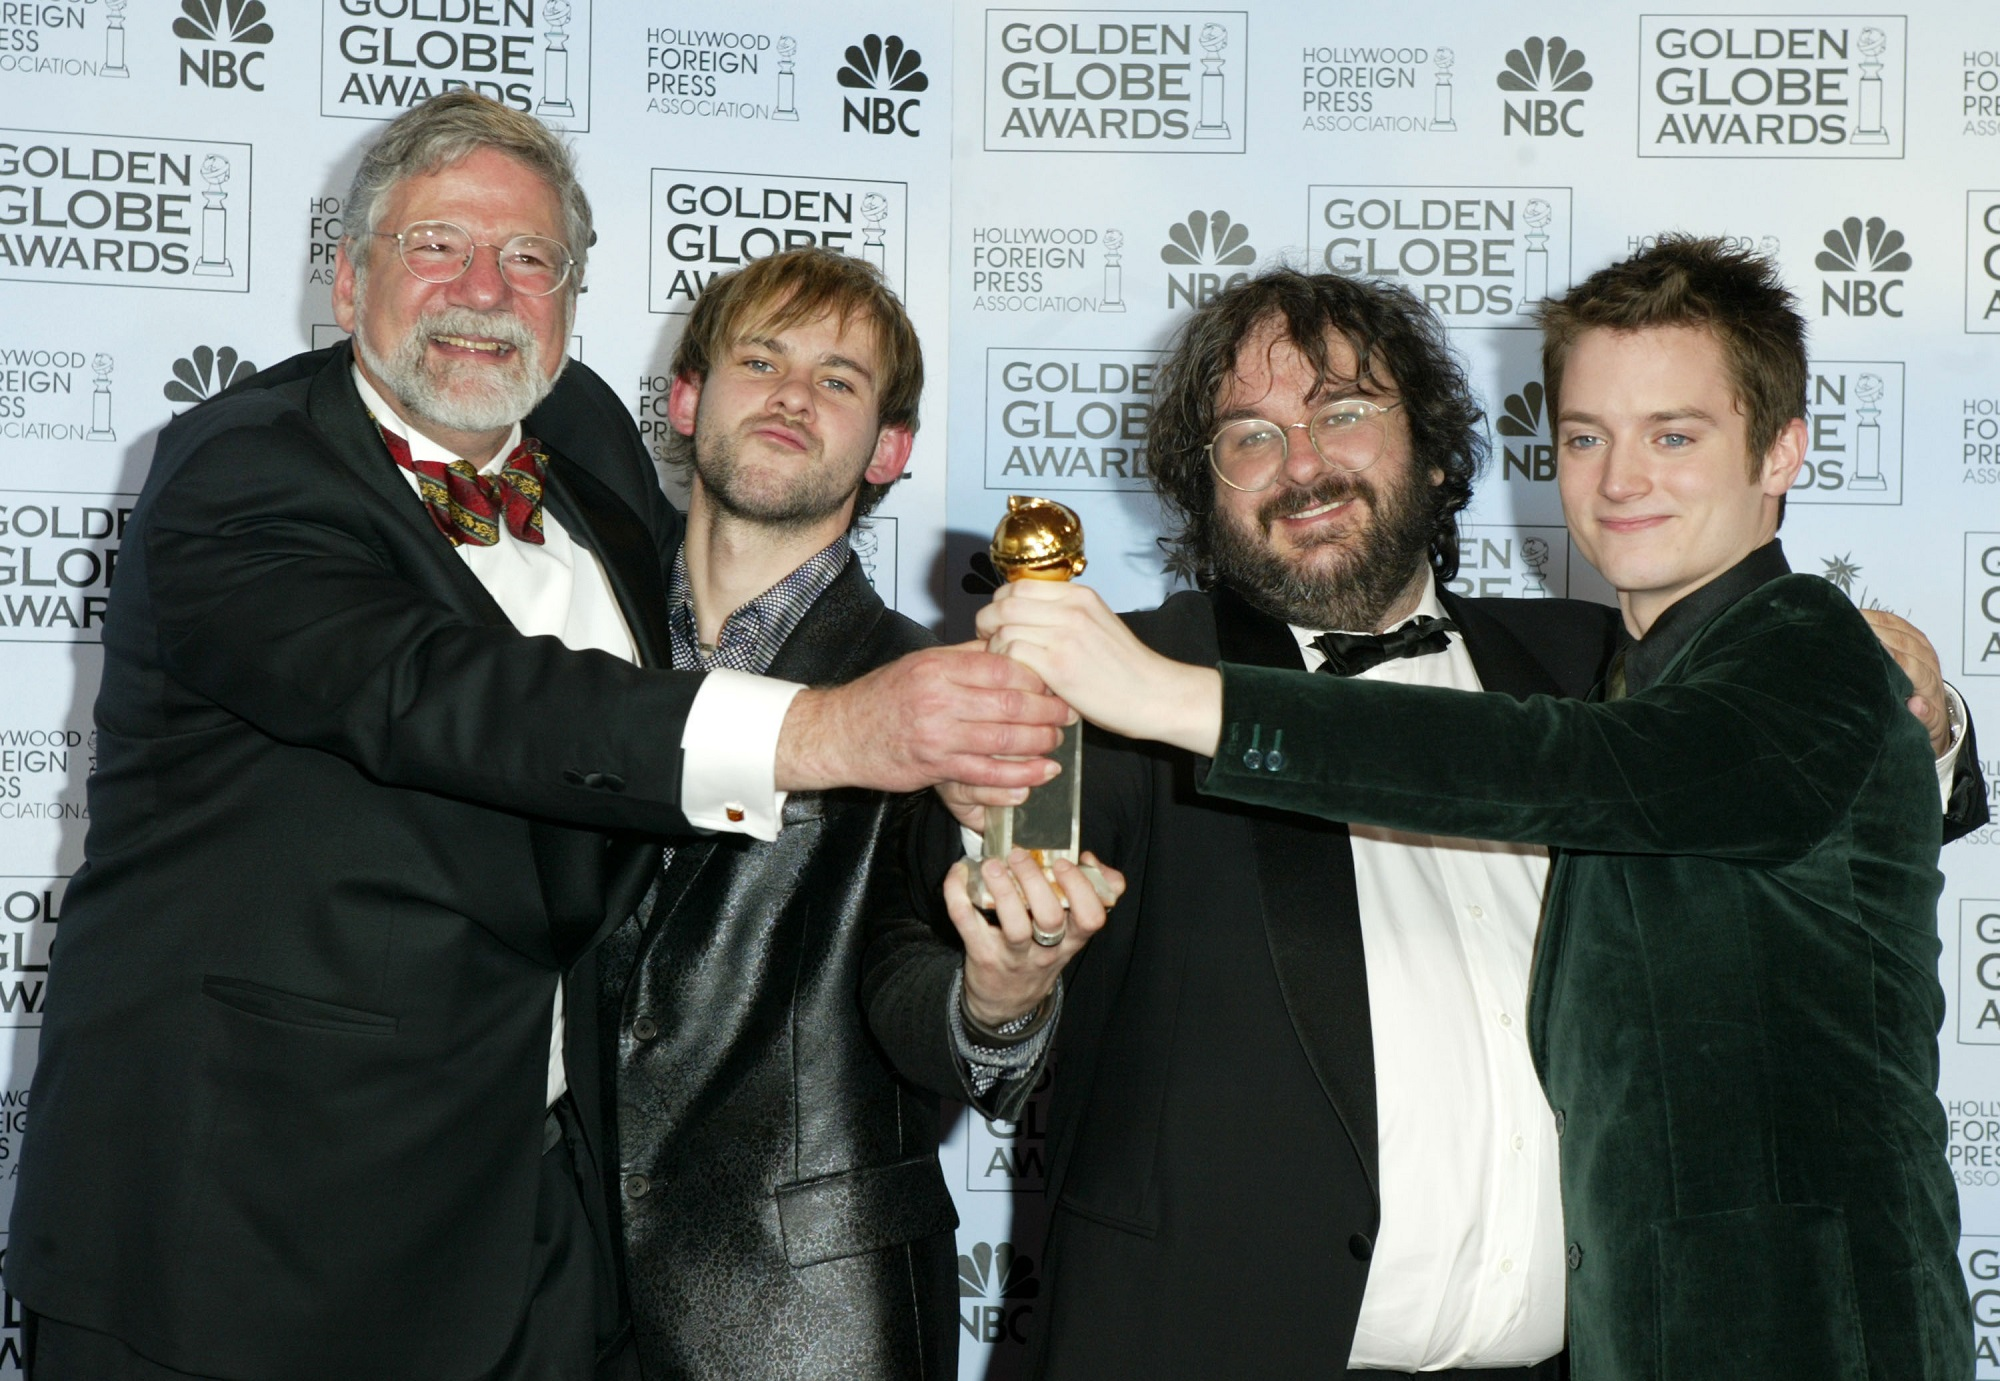 Barrie M. Osbourne, Dominic Monaghan, Peter Jackson, and Elijah Wood, of Lord of the Rings